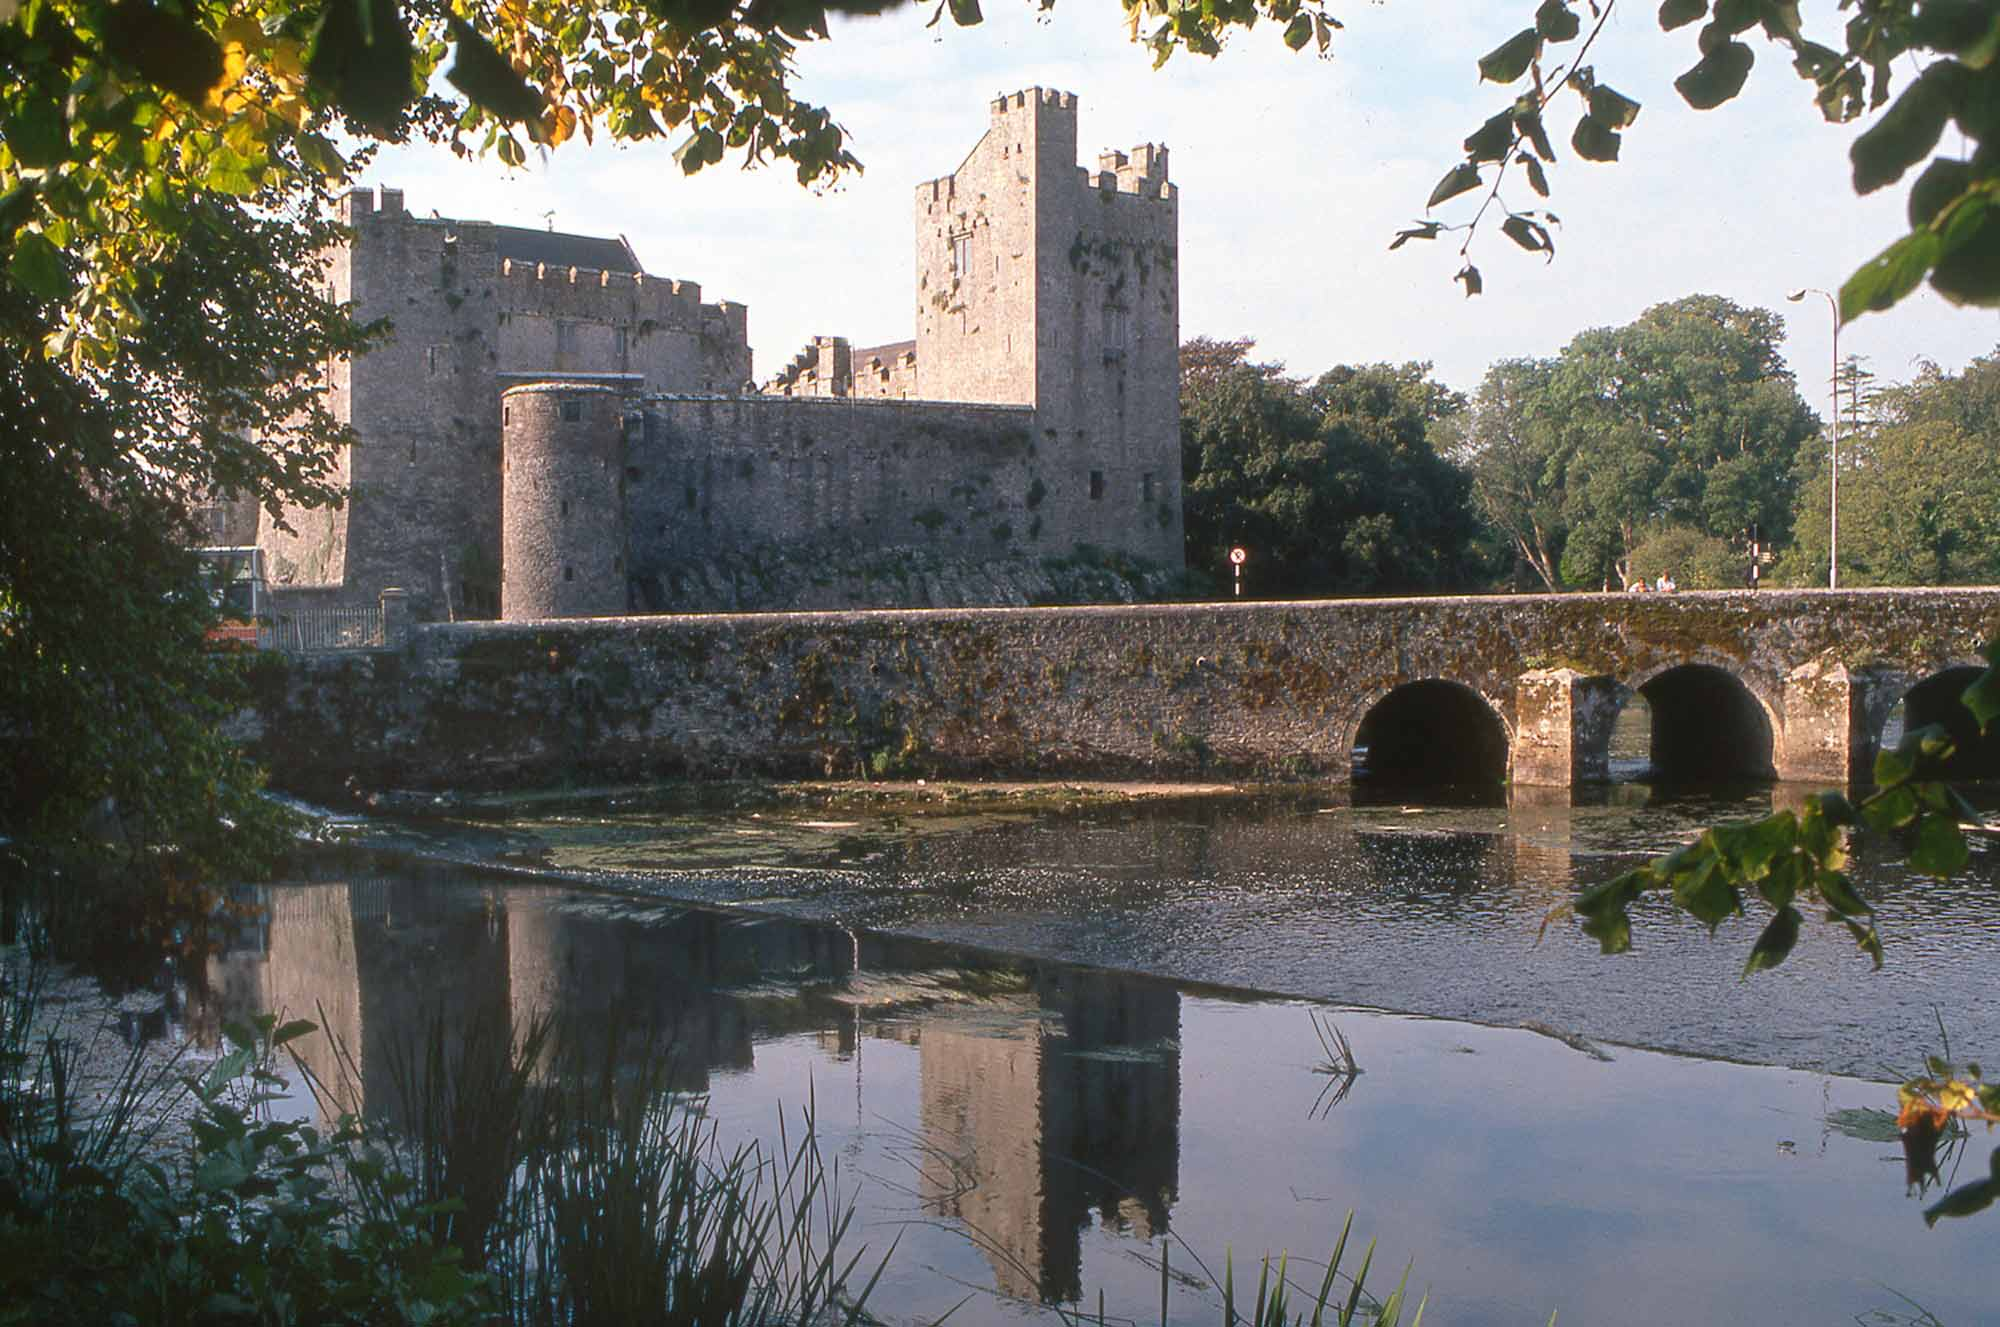 View of Cahir Castle from the banks of the River Suir.